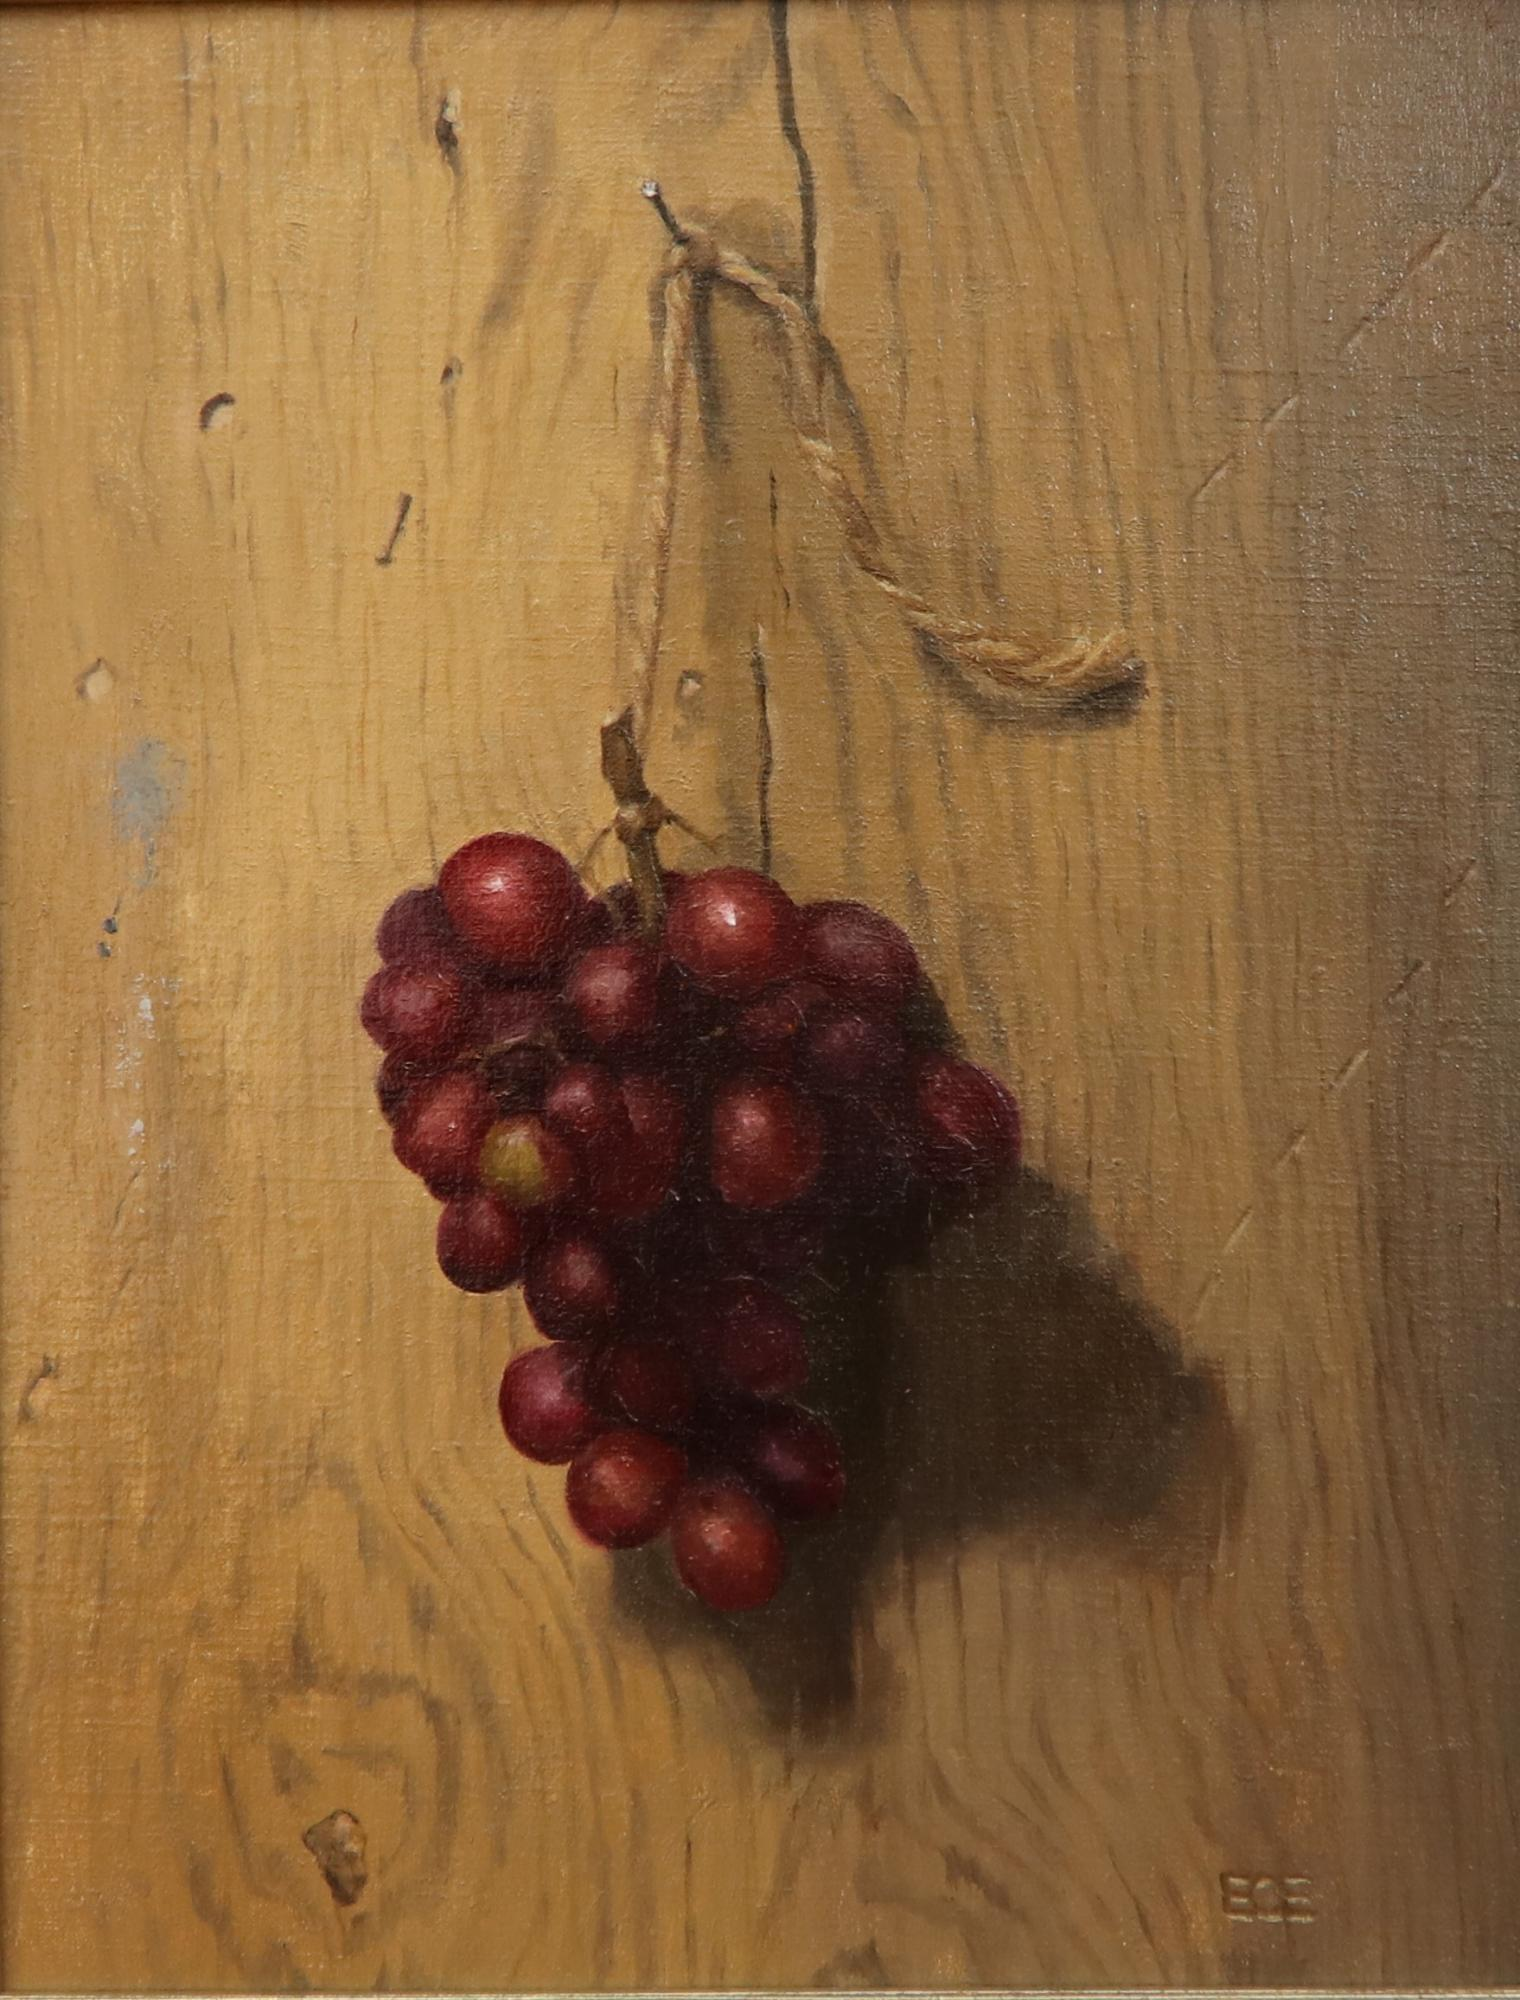 Hanging_Red_Grapes.jpg